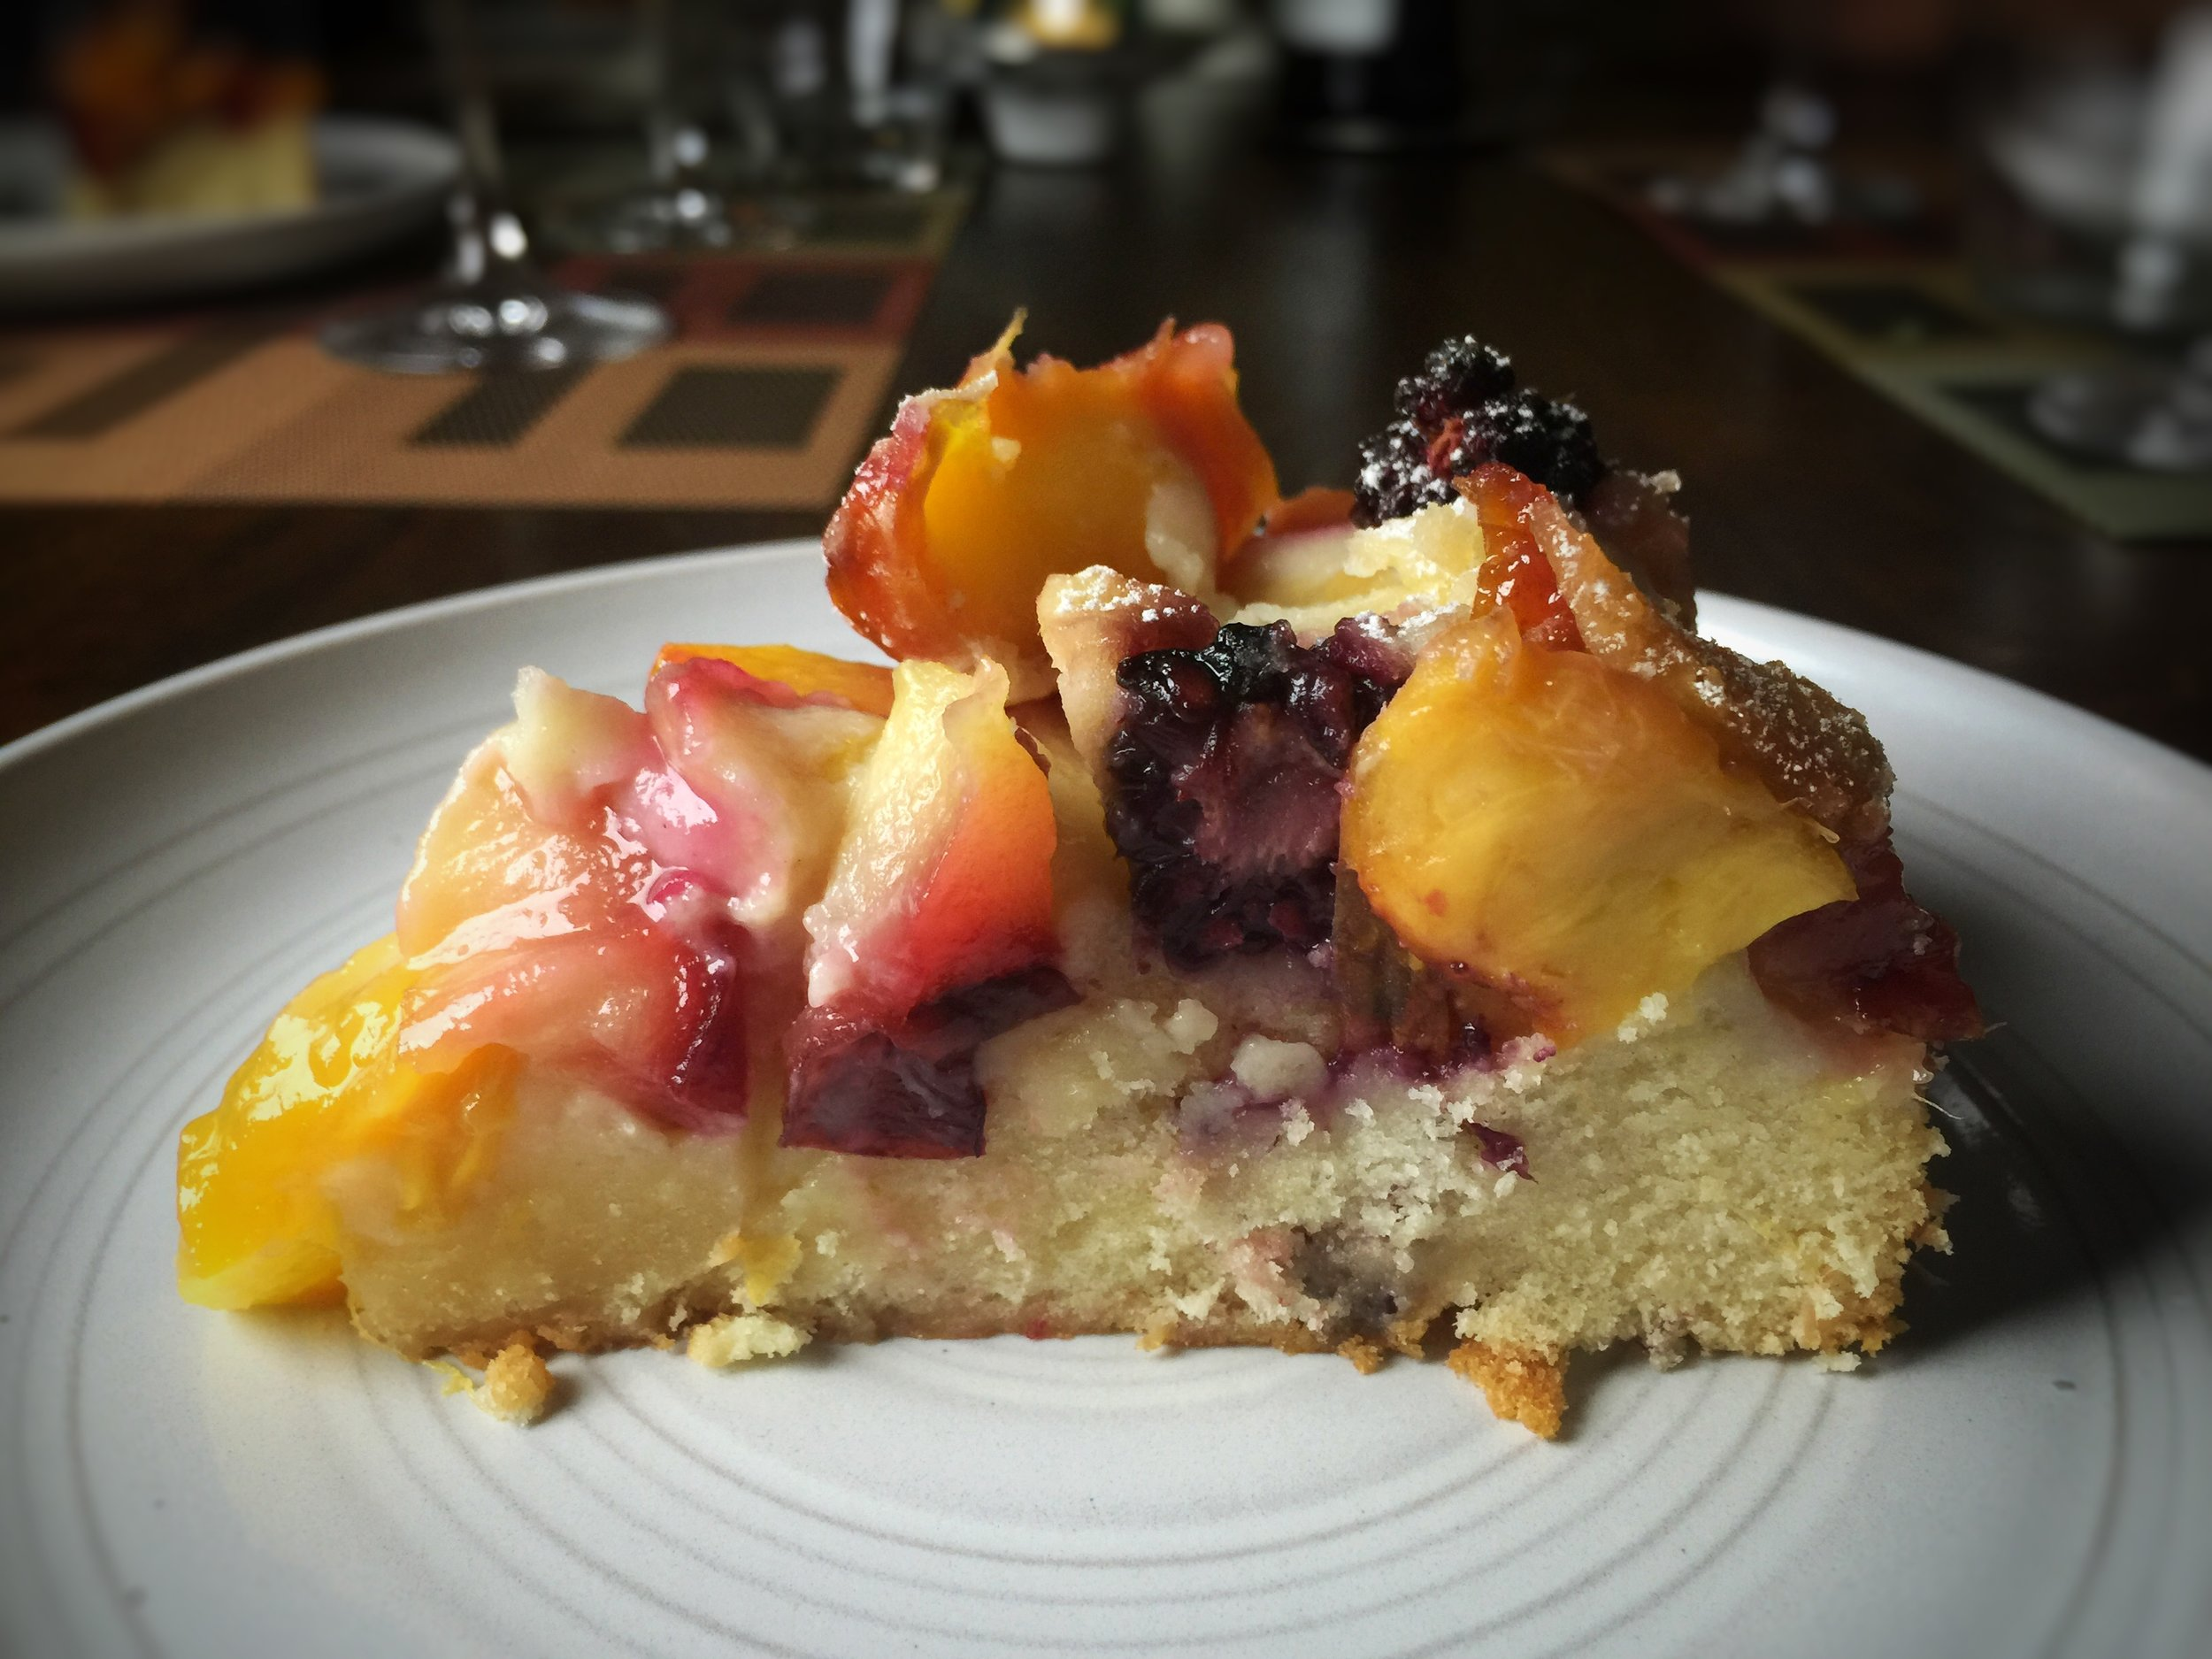 Summer fruit and almond cake